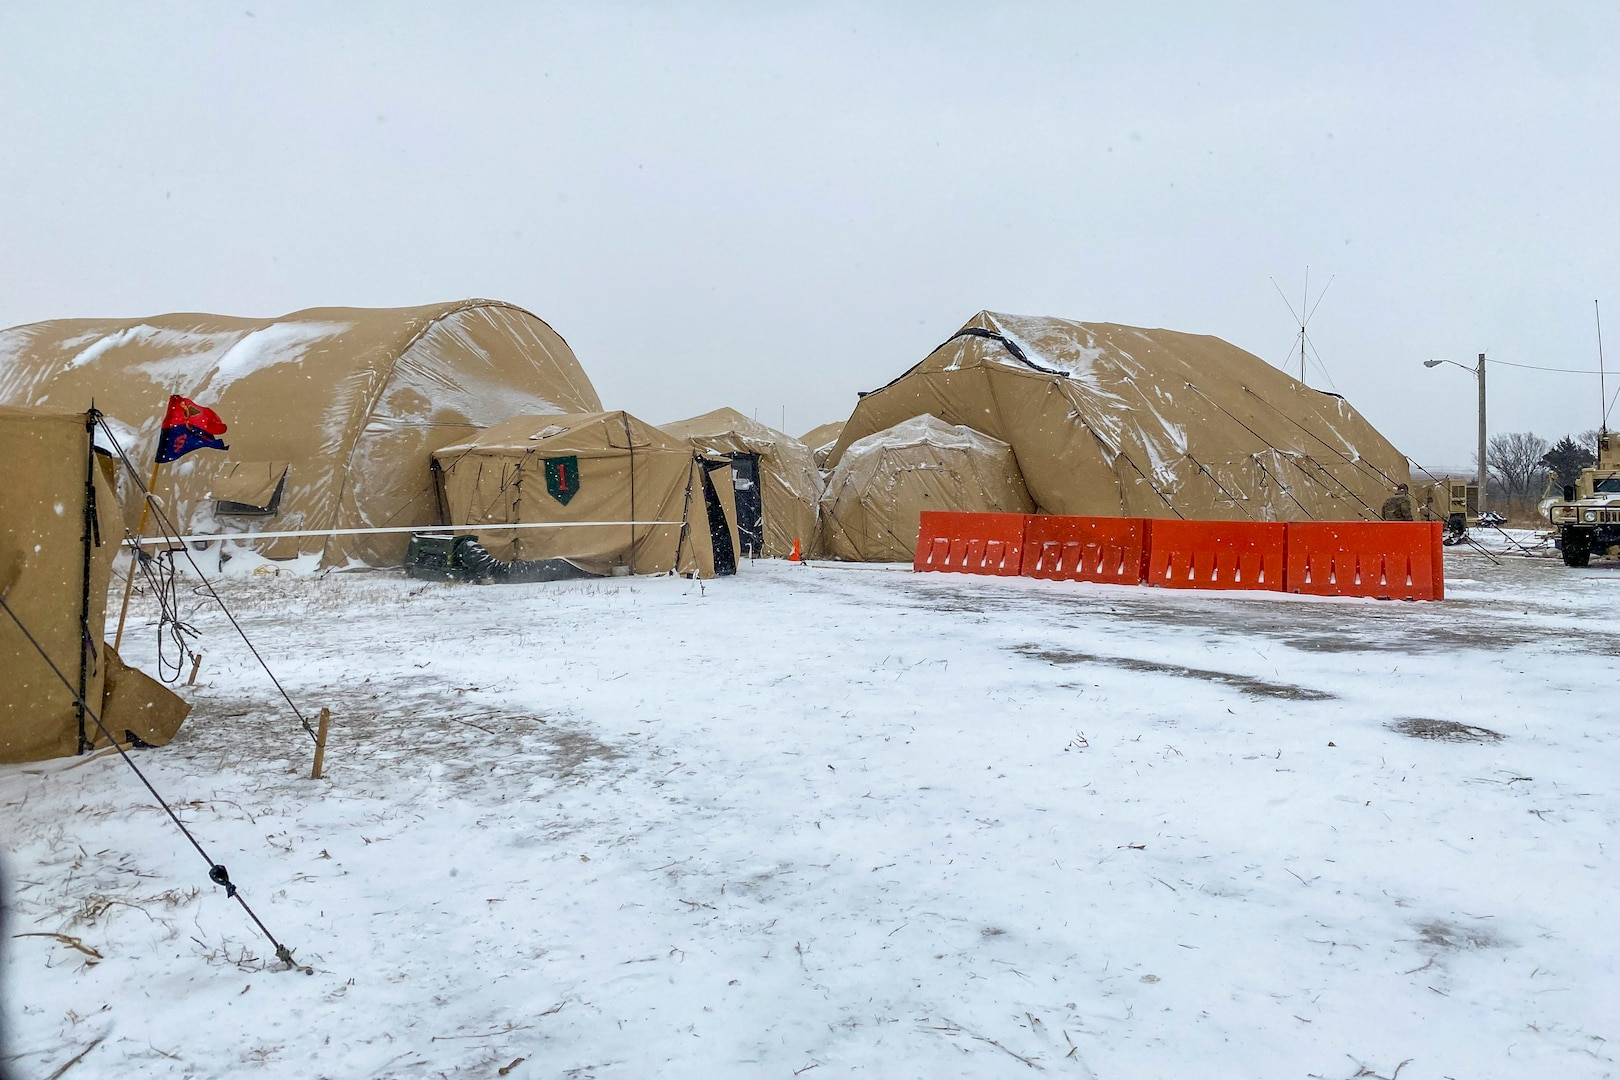 Portable shelters set-up as the tactical operations center during a winter warfighter exercise Jan. 26-Feb. 14, 2021 at Fort Riley, Kansas. Nearly 200 Soldiers from the Nebraska Army National Guard's Headquarters and Headquarters Company, 67th Maneuver Enhancement Brigade and the 234th Signal Company, attended the three-week training exercise that tested their ability to operate in a simulated combat environment in support of the 1st Infantry Division.